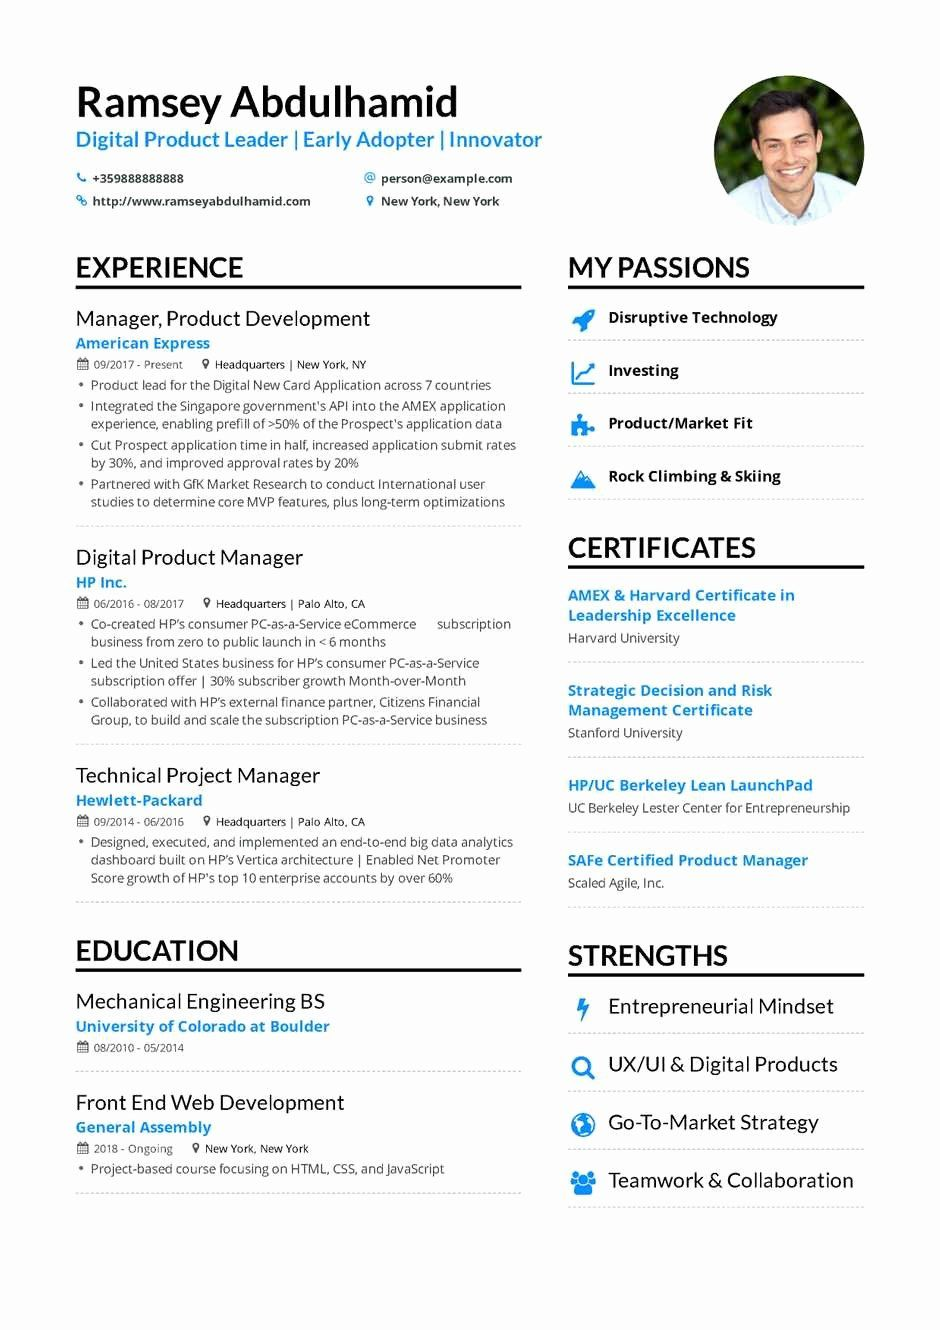 Program Manager Resume Examples Lovely The Best 2019 Project Manager Resume Example Guide Project Manager Resume Manager Resume Resume Examples